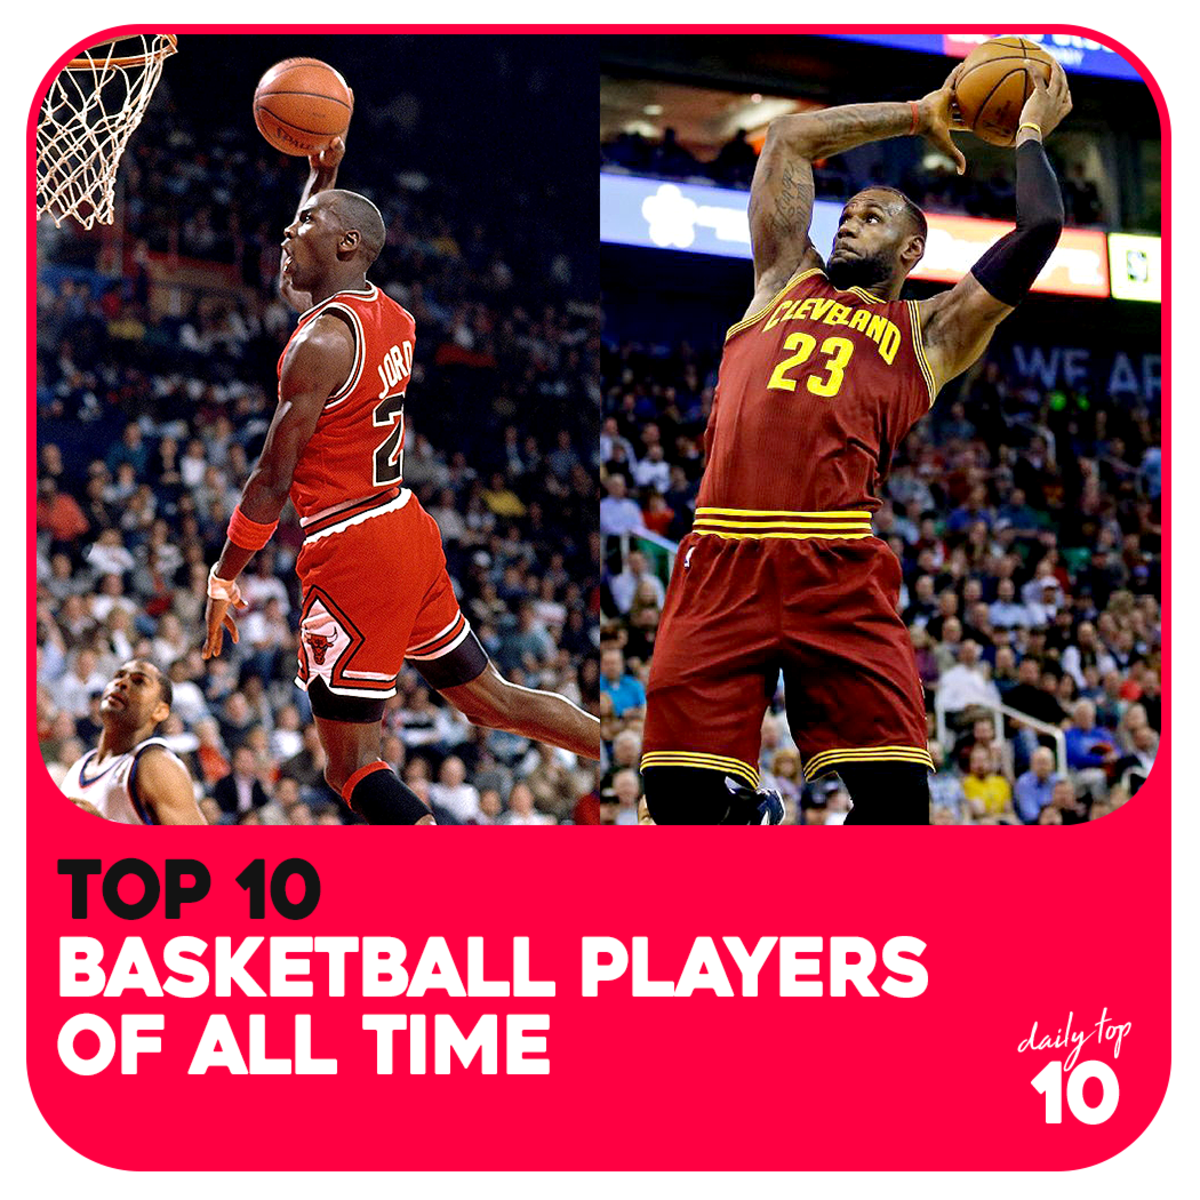 Top 10 Basketball Players of All Time (Plus Honorable